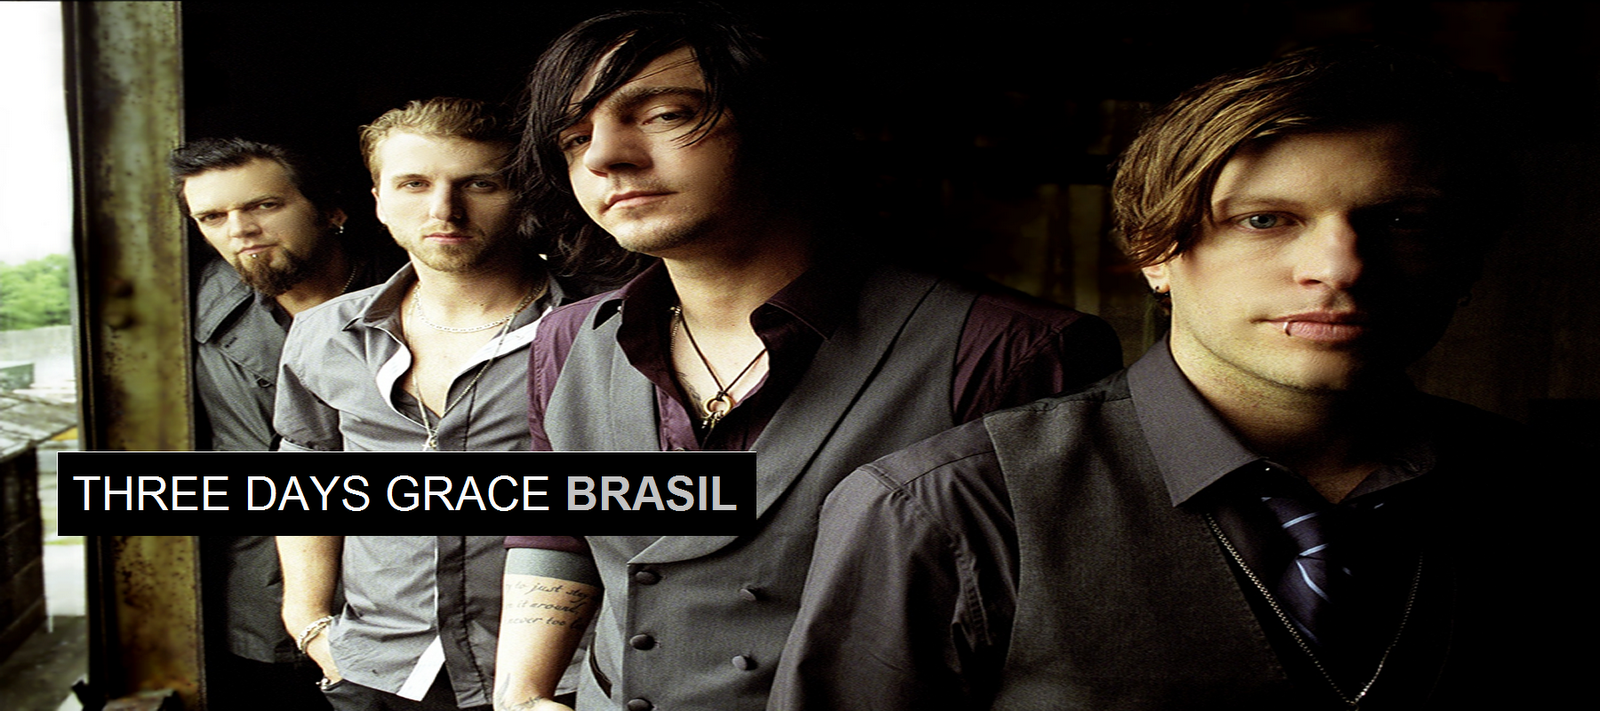 Three Days Grace Brasil